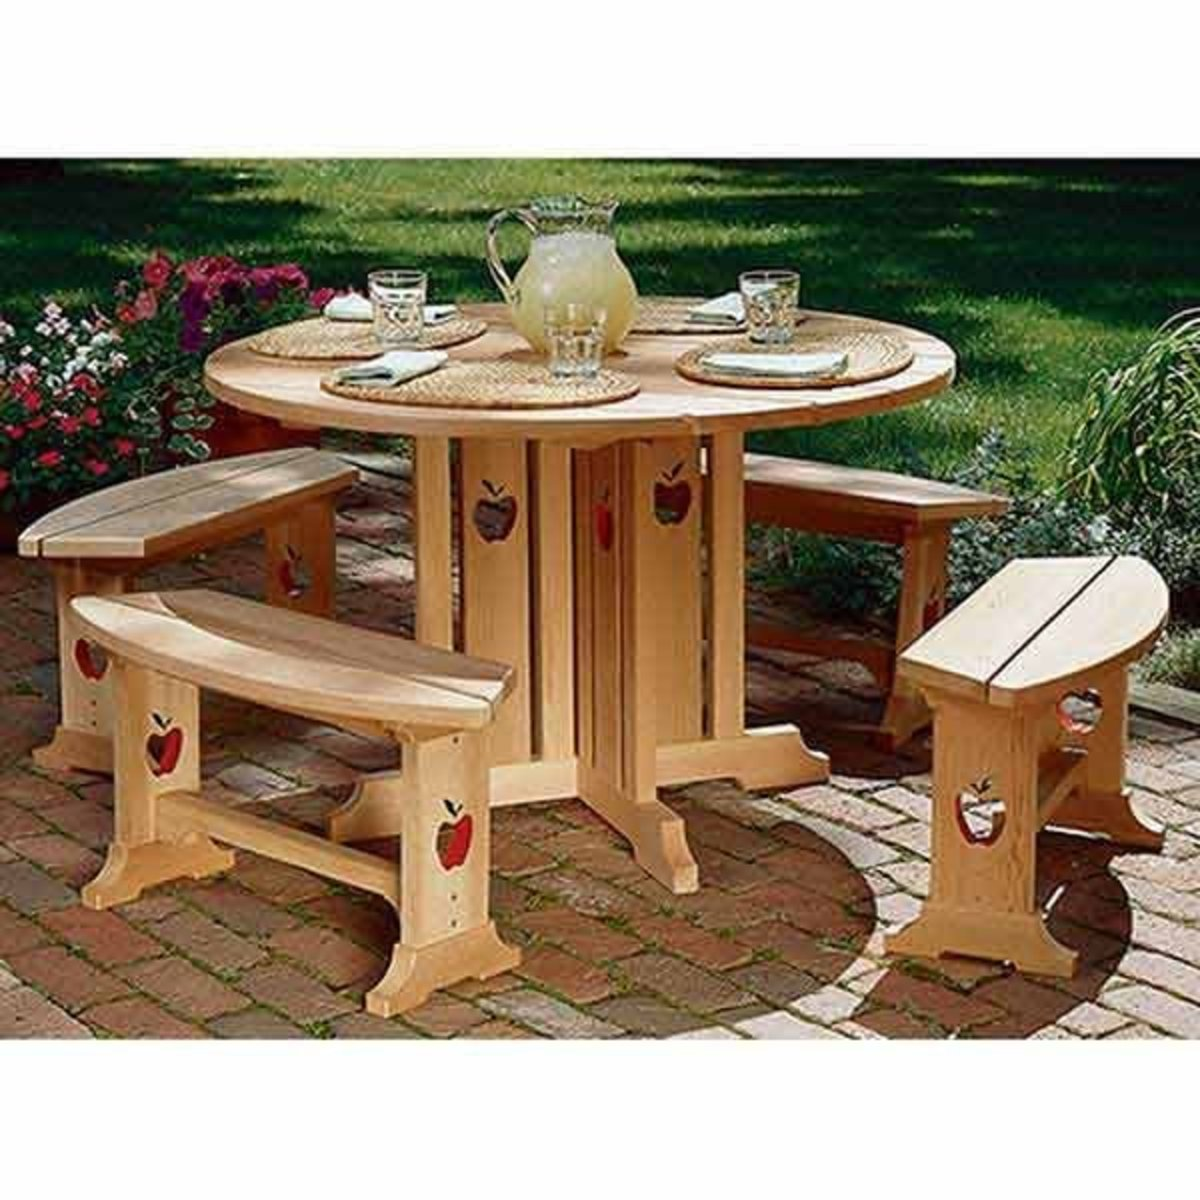 Pleasant Wood Magazine Woodworking Project Paper Plan To Build Alphanode Cool Chair Designs And Ideas Alphanodeonline